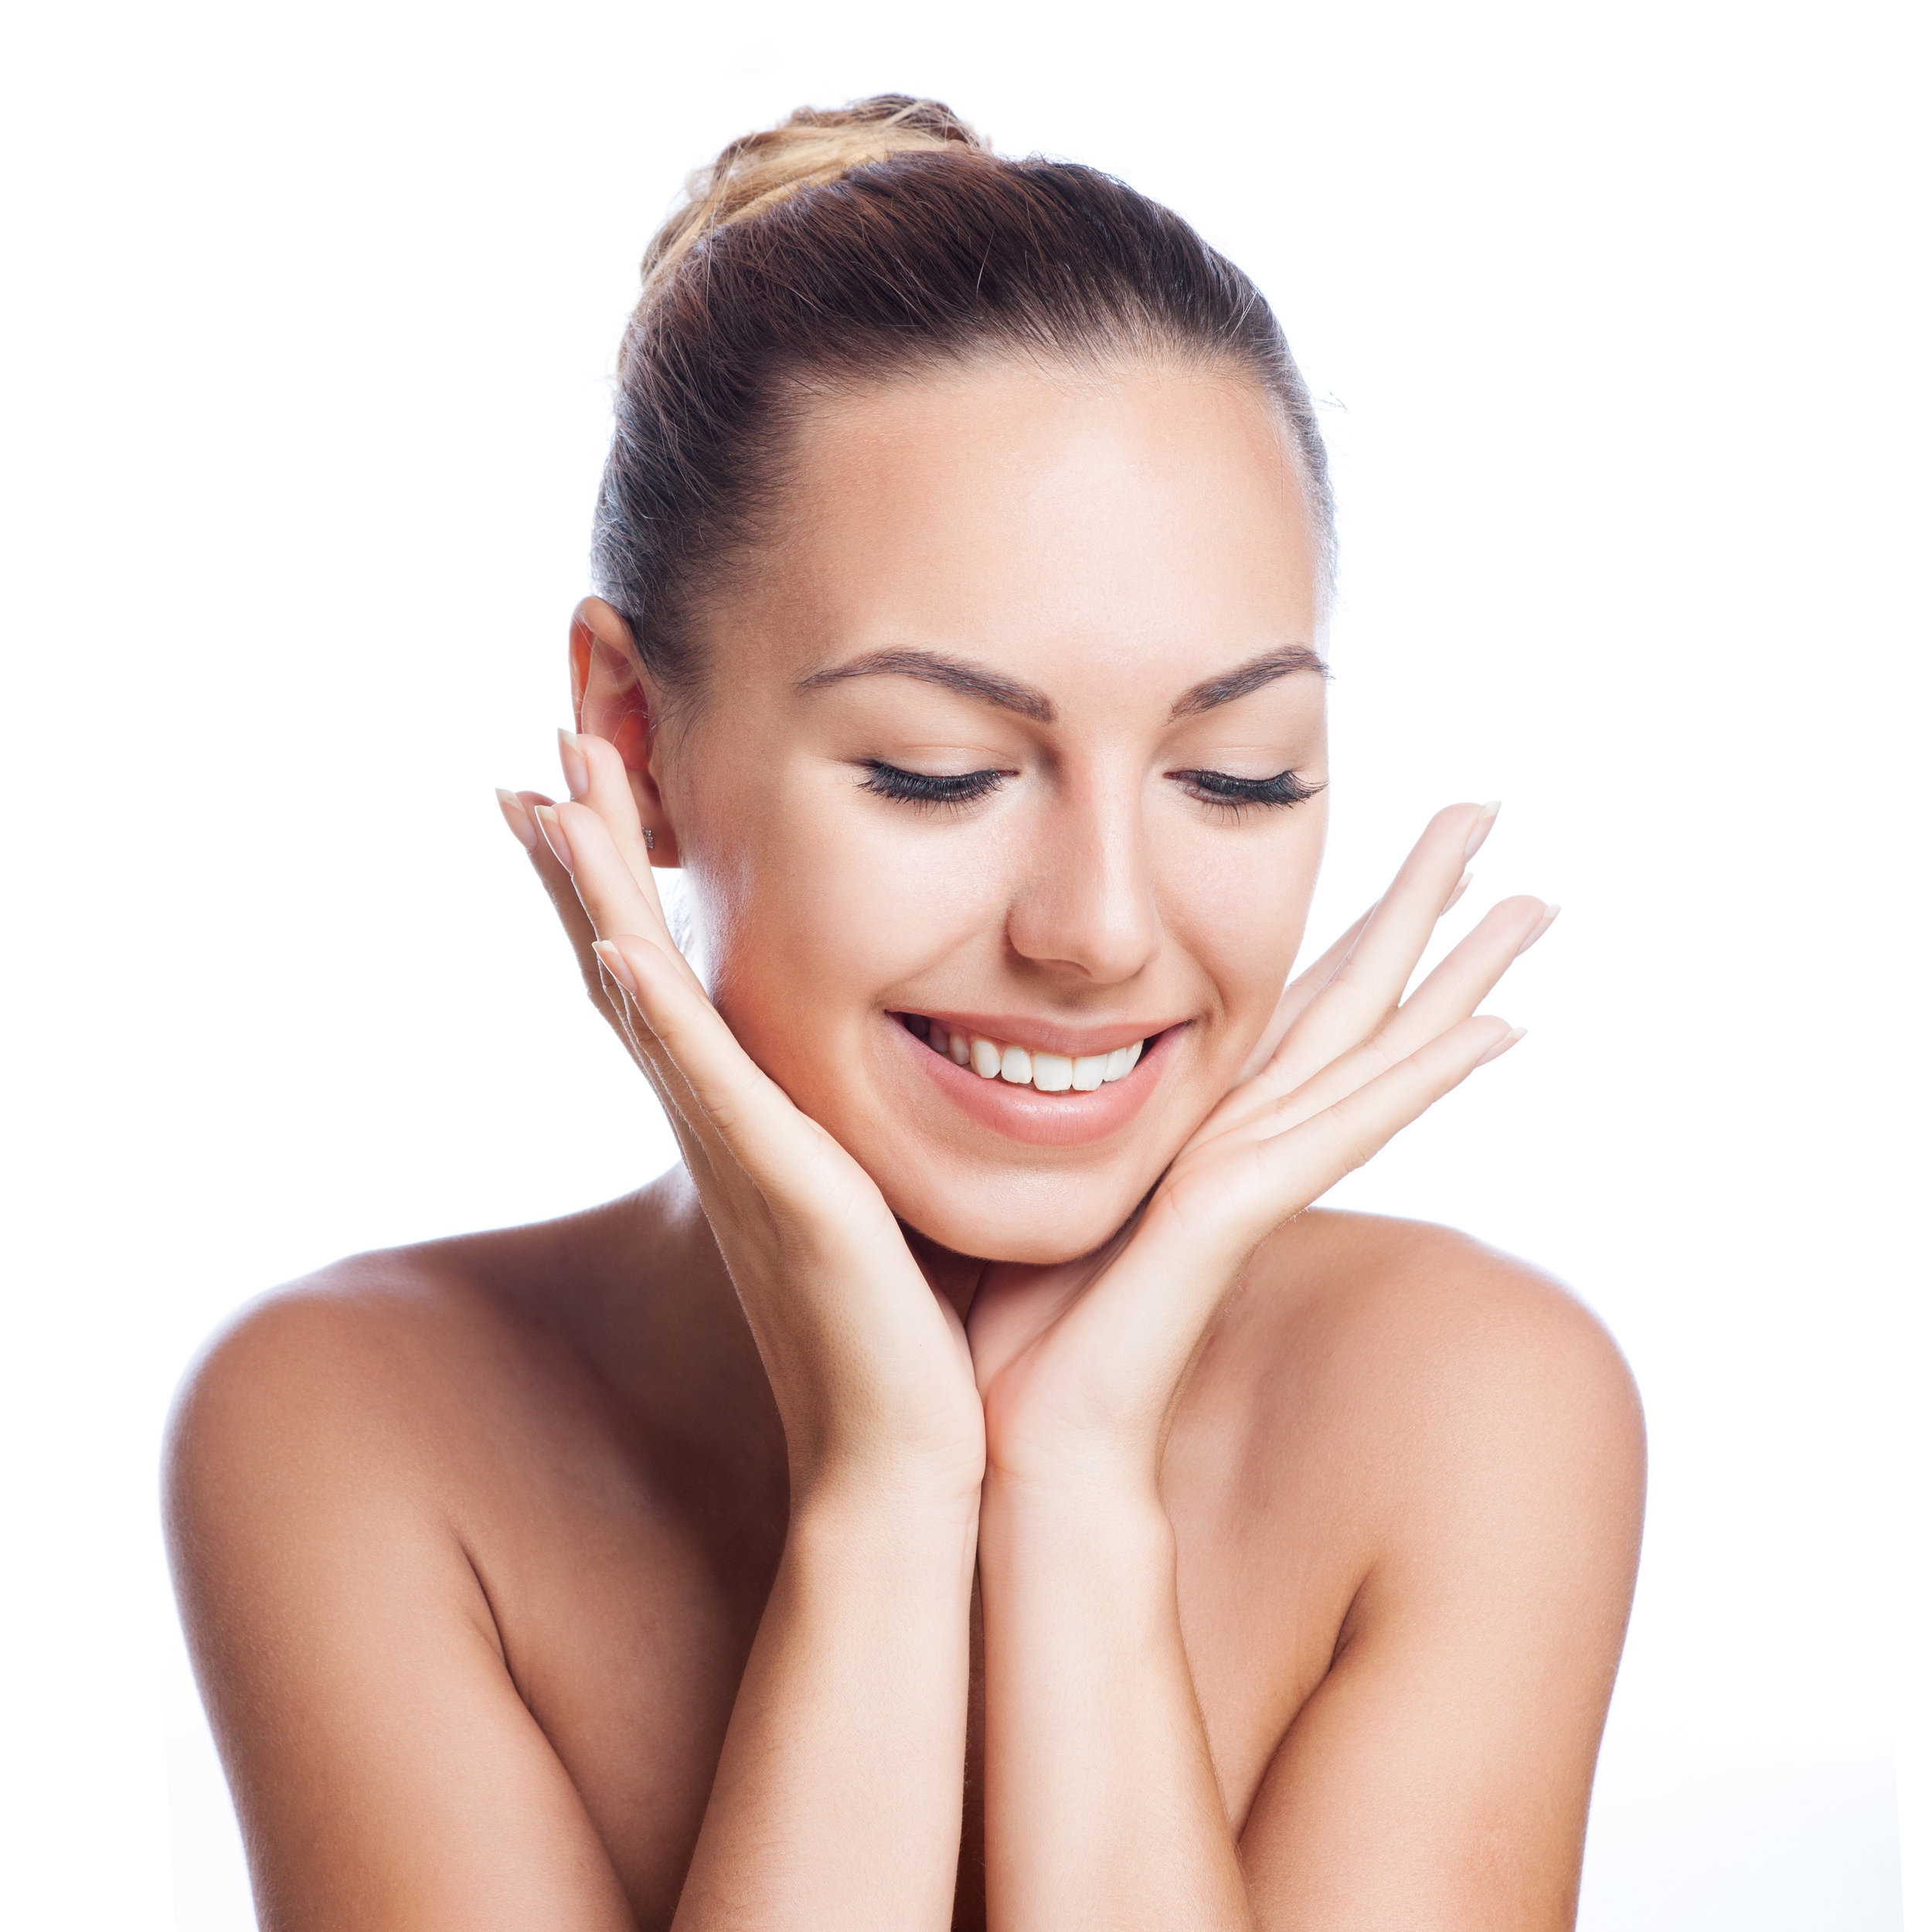 Age Summum Treatment   Your alternative to plastic surgery for treating signs of ageing immediately- wrinkles, fine lines, loss of firmness and a lack of radiance. The active ingredients used include pure vitamin C, hyaluronic acid filler spheres and pro-collagen.